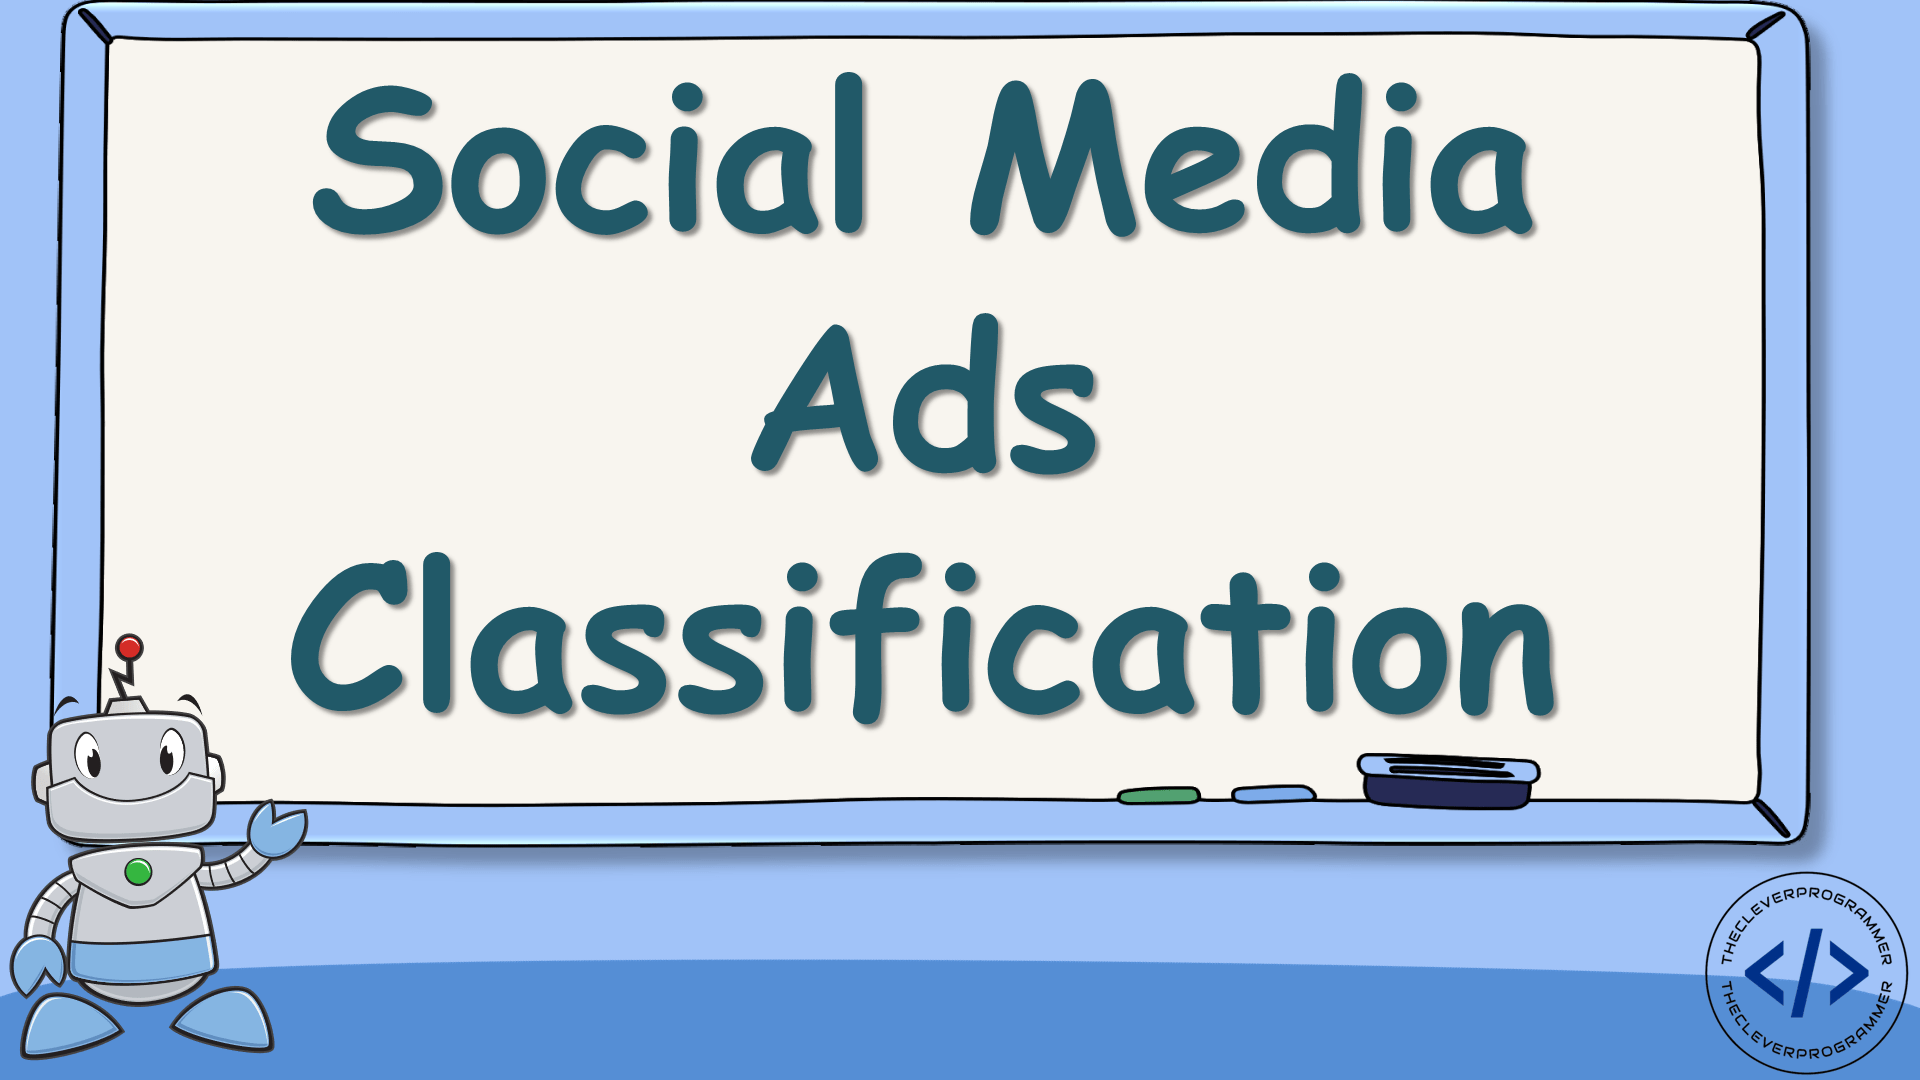 Social Media Ads Classification with machine learning